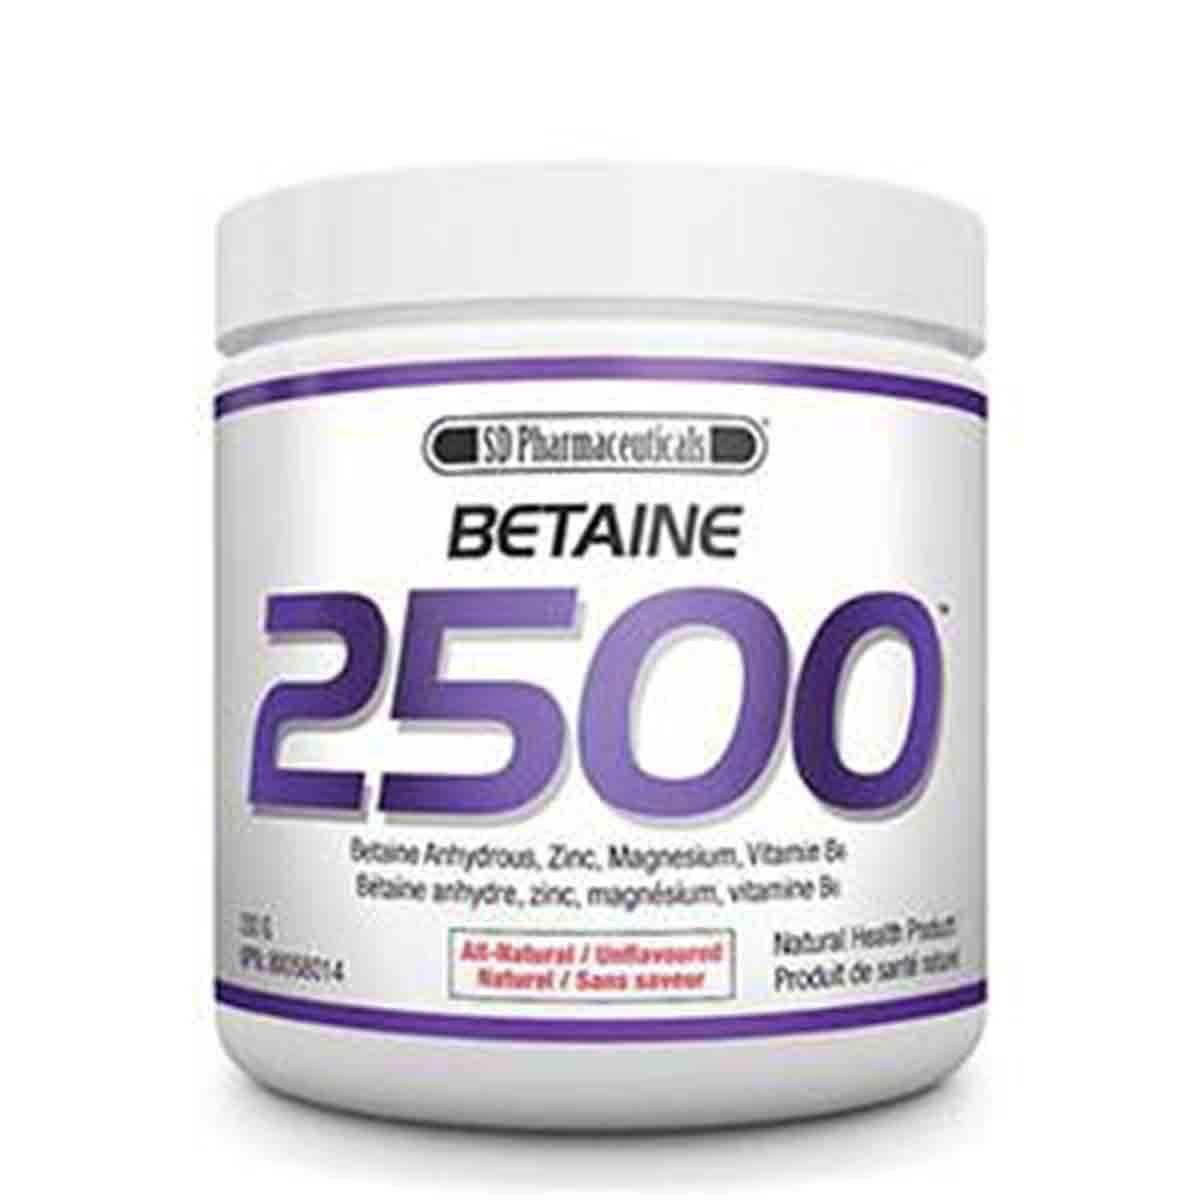 S D Pharmaceuticals Betaine 2500